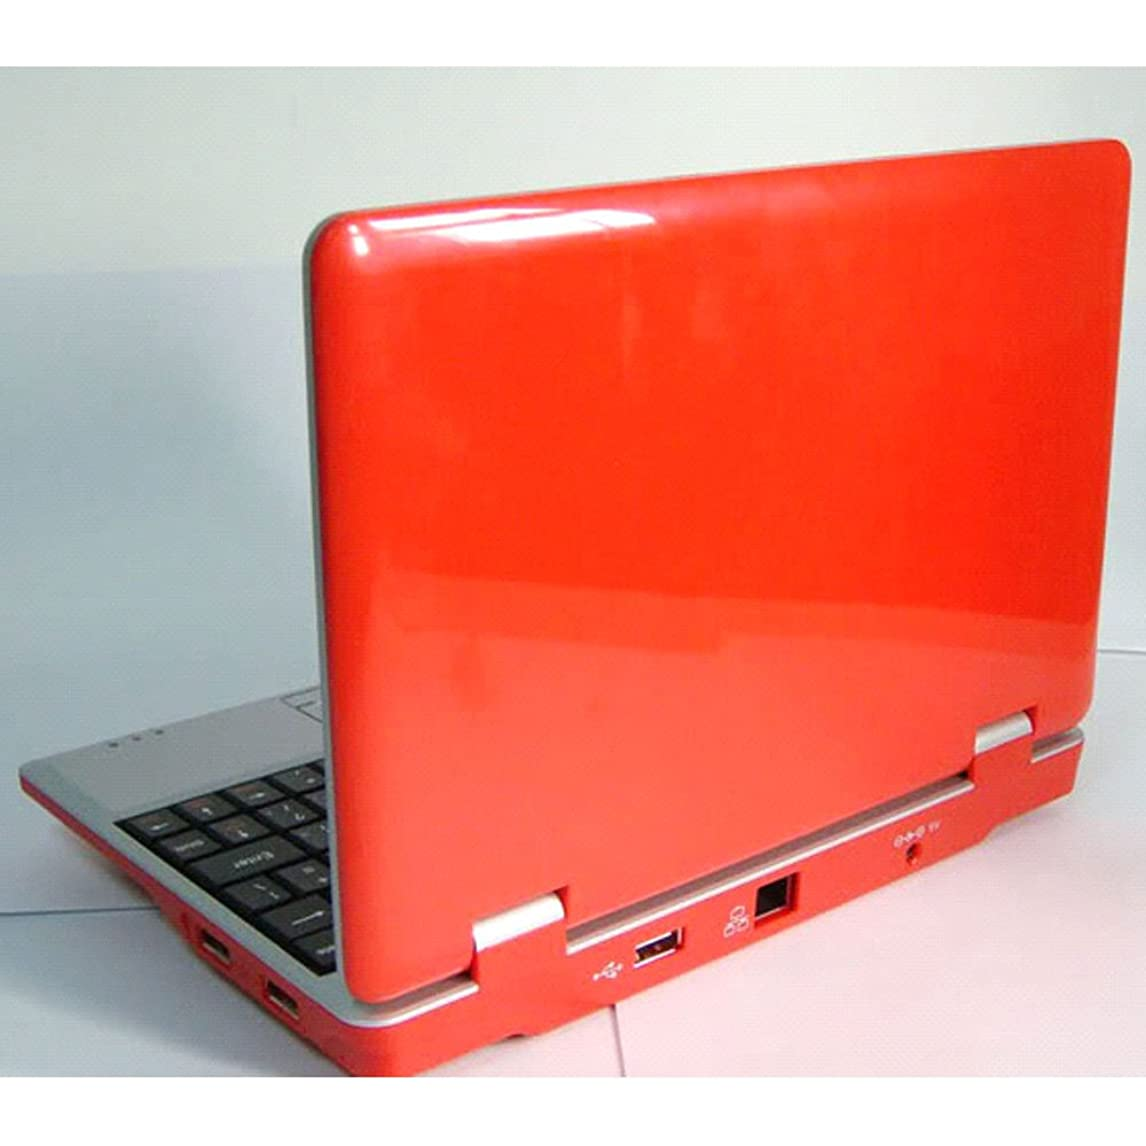 Soledpower (Android 4.2 - 512mb Ram,4gb Hard Disk) Solid Red 7 Inch Android Laptop Netbook Pc, Wifi and Camera with Installed Apps ,Support Sd Card ,Google Play Store,hdmi,red Color woft9500029945